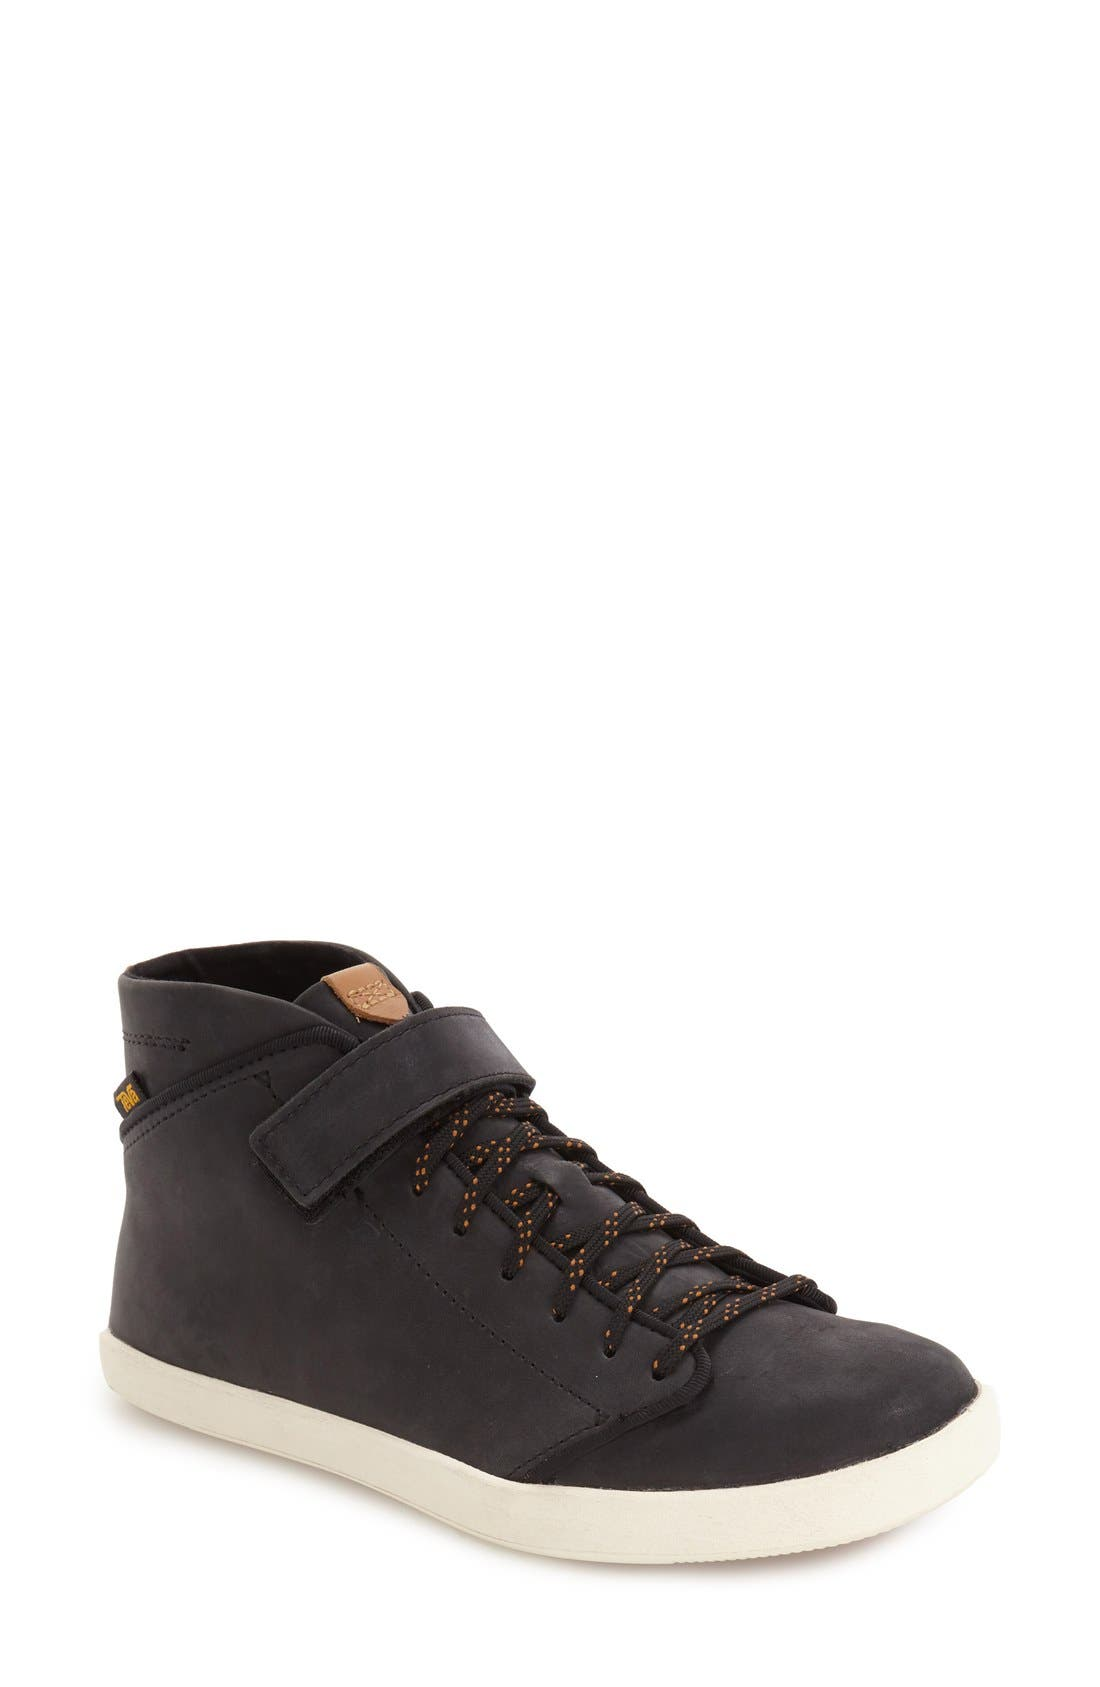 Teva 'Willow' Midi Lace-Up Sneaker (Women)